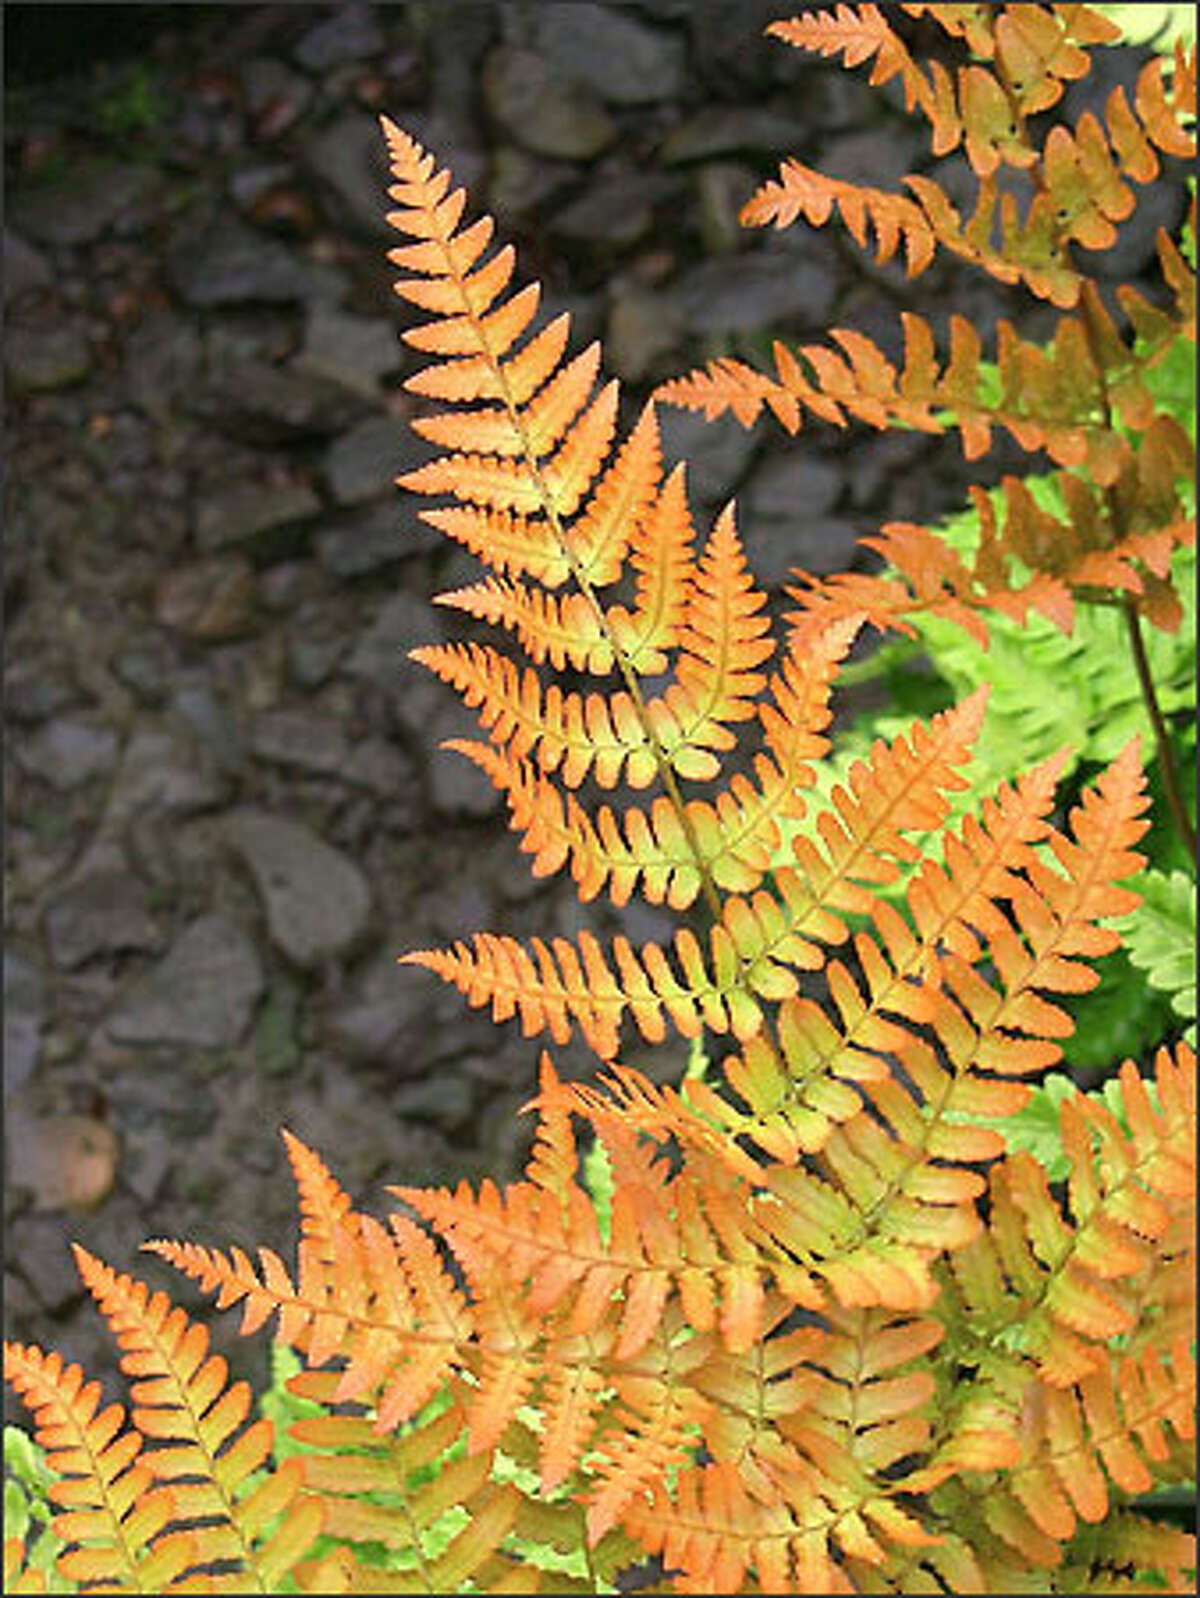 The foliage of the autumn fern (Dryopteris erythrosora) glows with golden highlights.